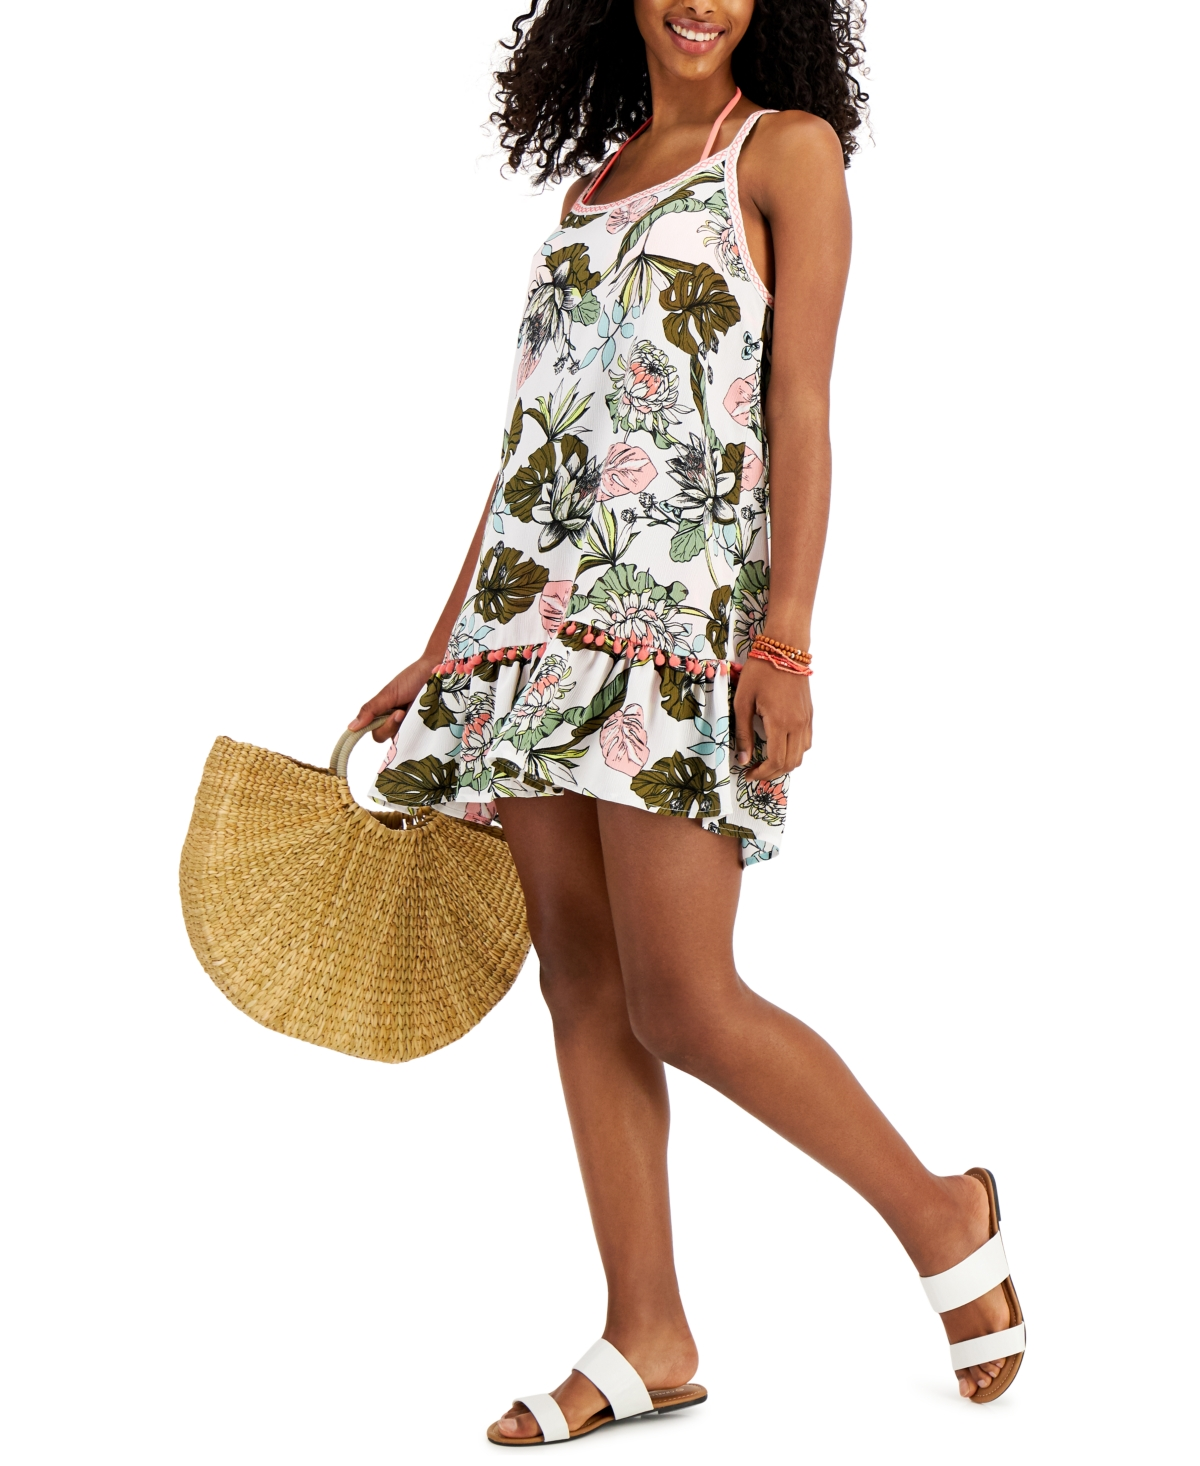 Miken Juniors' Tiered Pom Pom Cover-Up Dress, Created for Macy's Women's Swimsuit